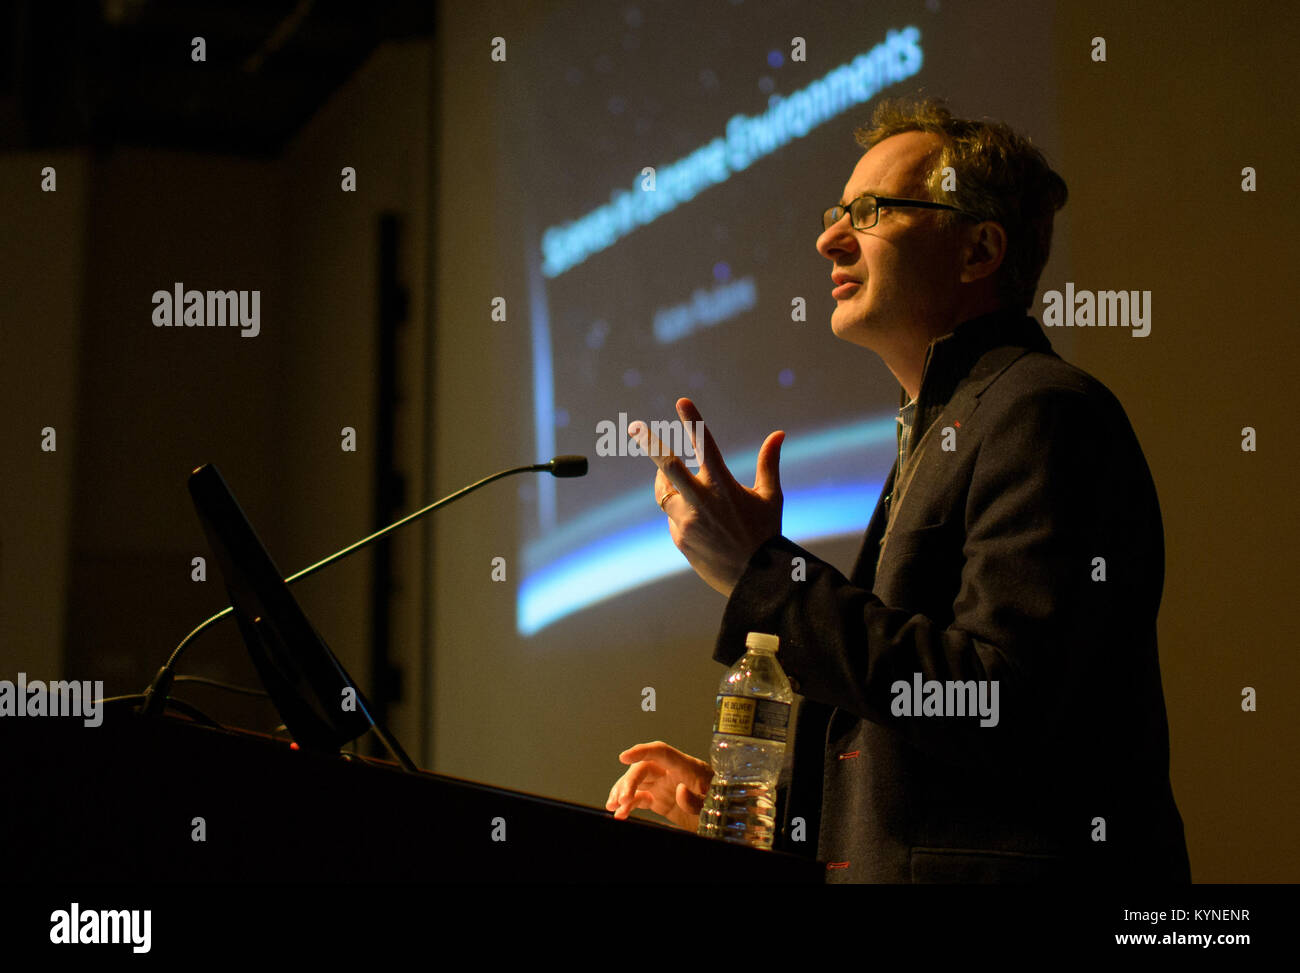 Denis Wirtz, vice provost for research at Johns Hopkins University, speaks prior to a presentation by NASA astronaut - Stock Image